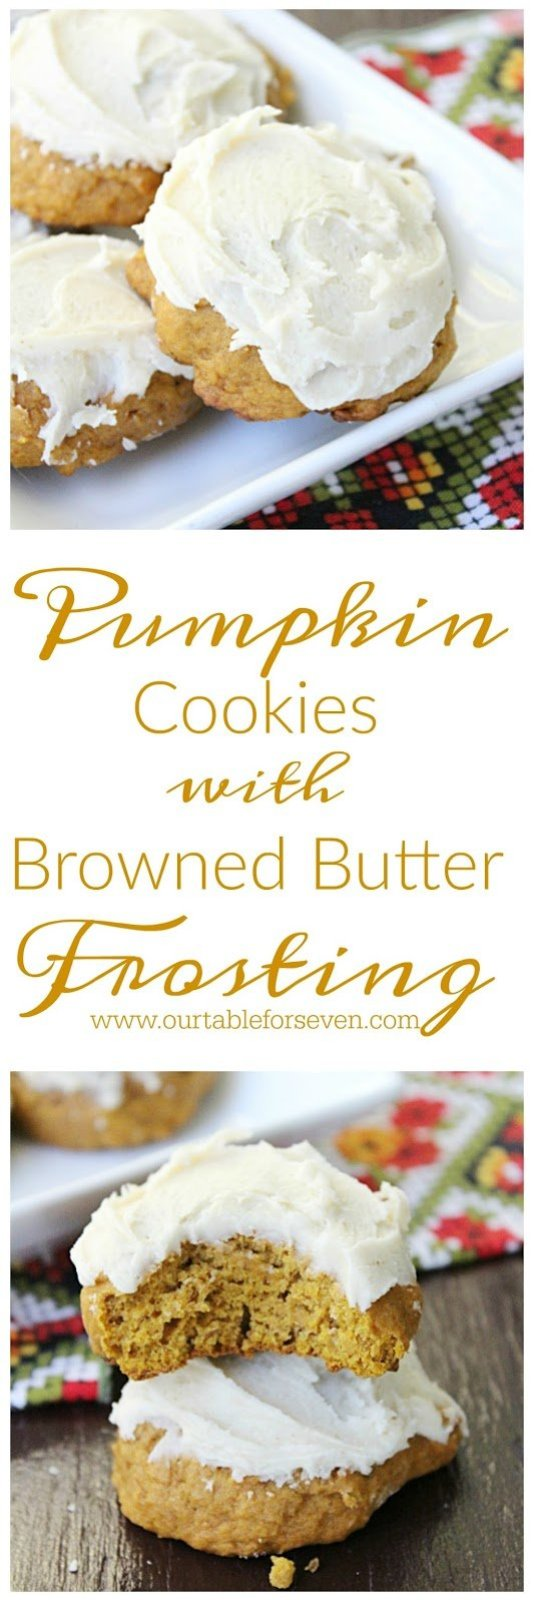 Pumpkin Cookies with Browned Butter Frosting from Table for Seven